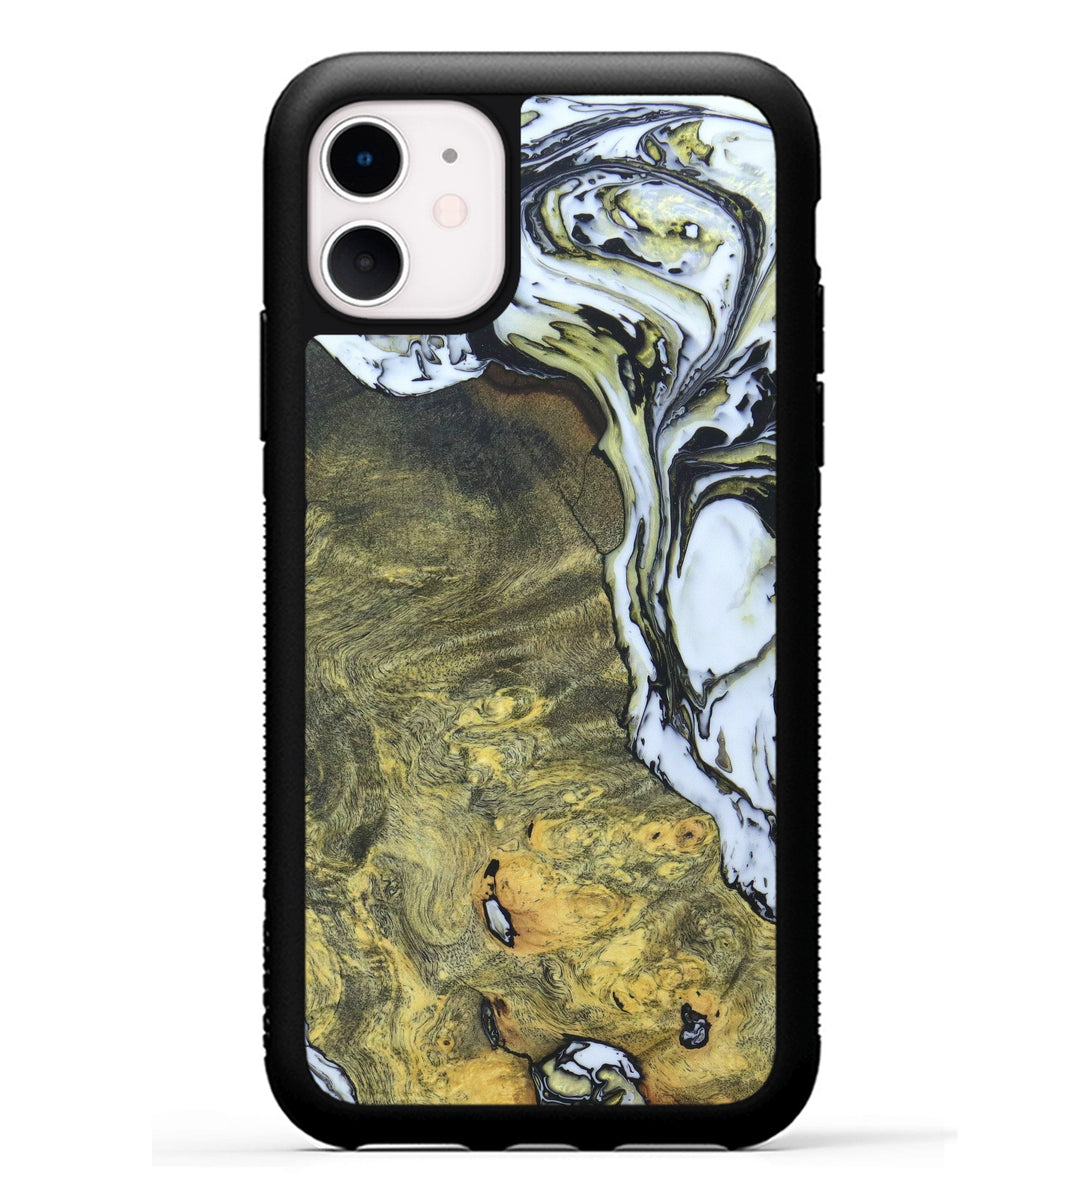 iPhone 11 Wood+Resin Case - Norean (Black & White, 334675)